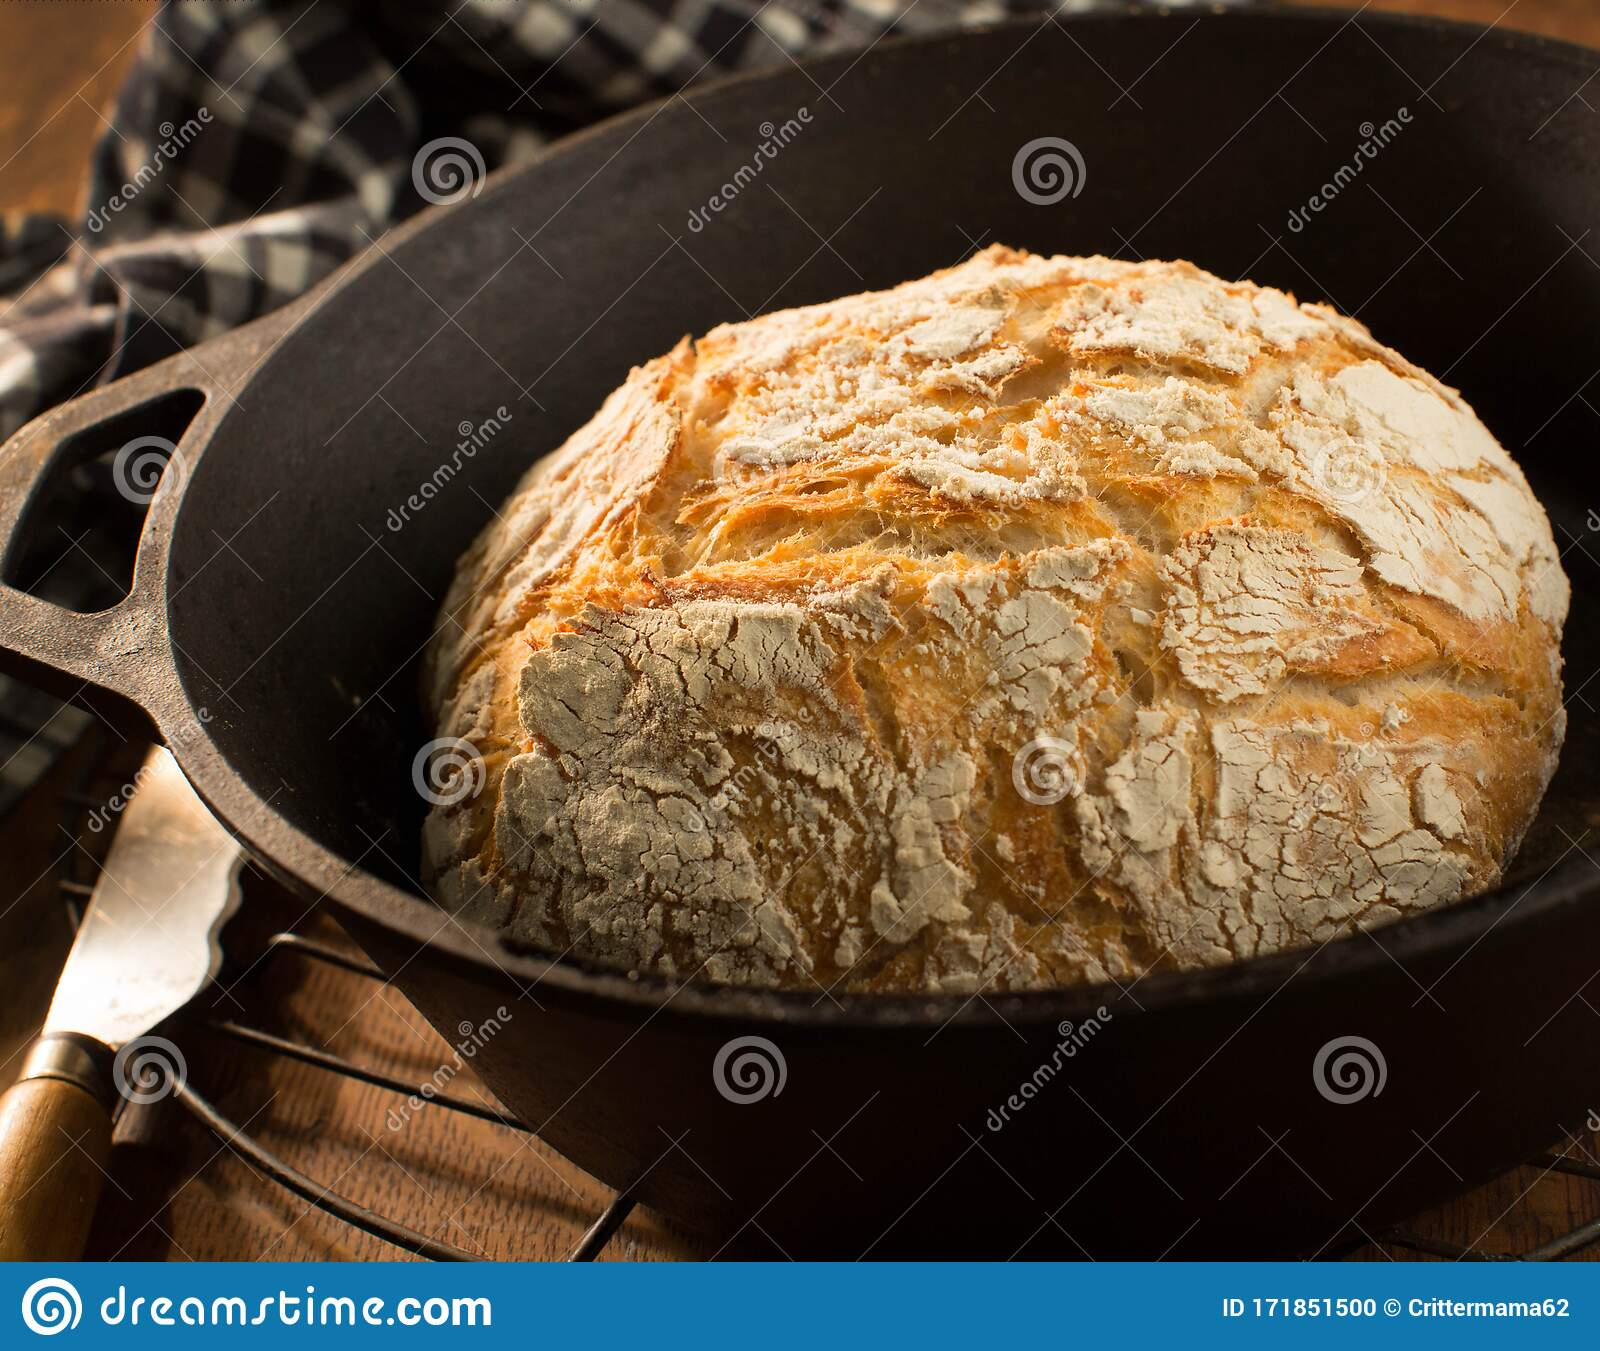 Crusty Round Loaf Of French Bread In Cast Iron Dutch Oven Stock Photo Image Of Oven Home 171851500